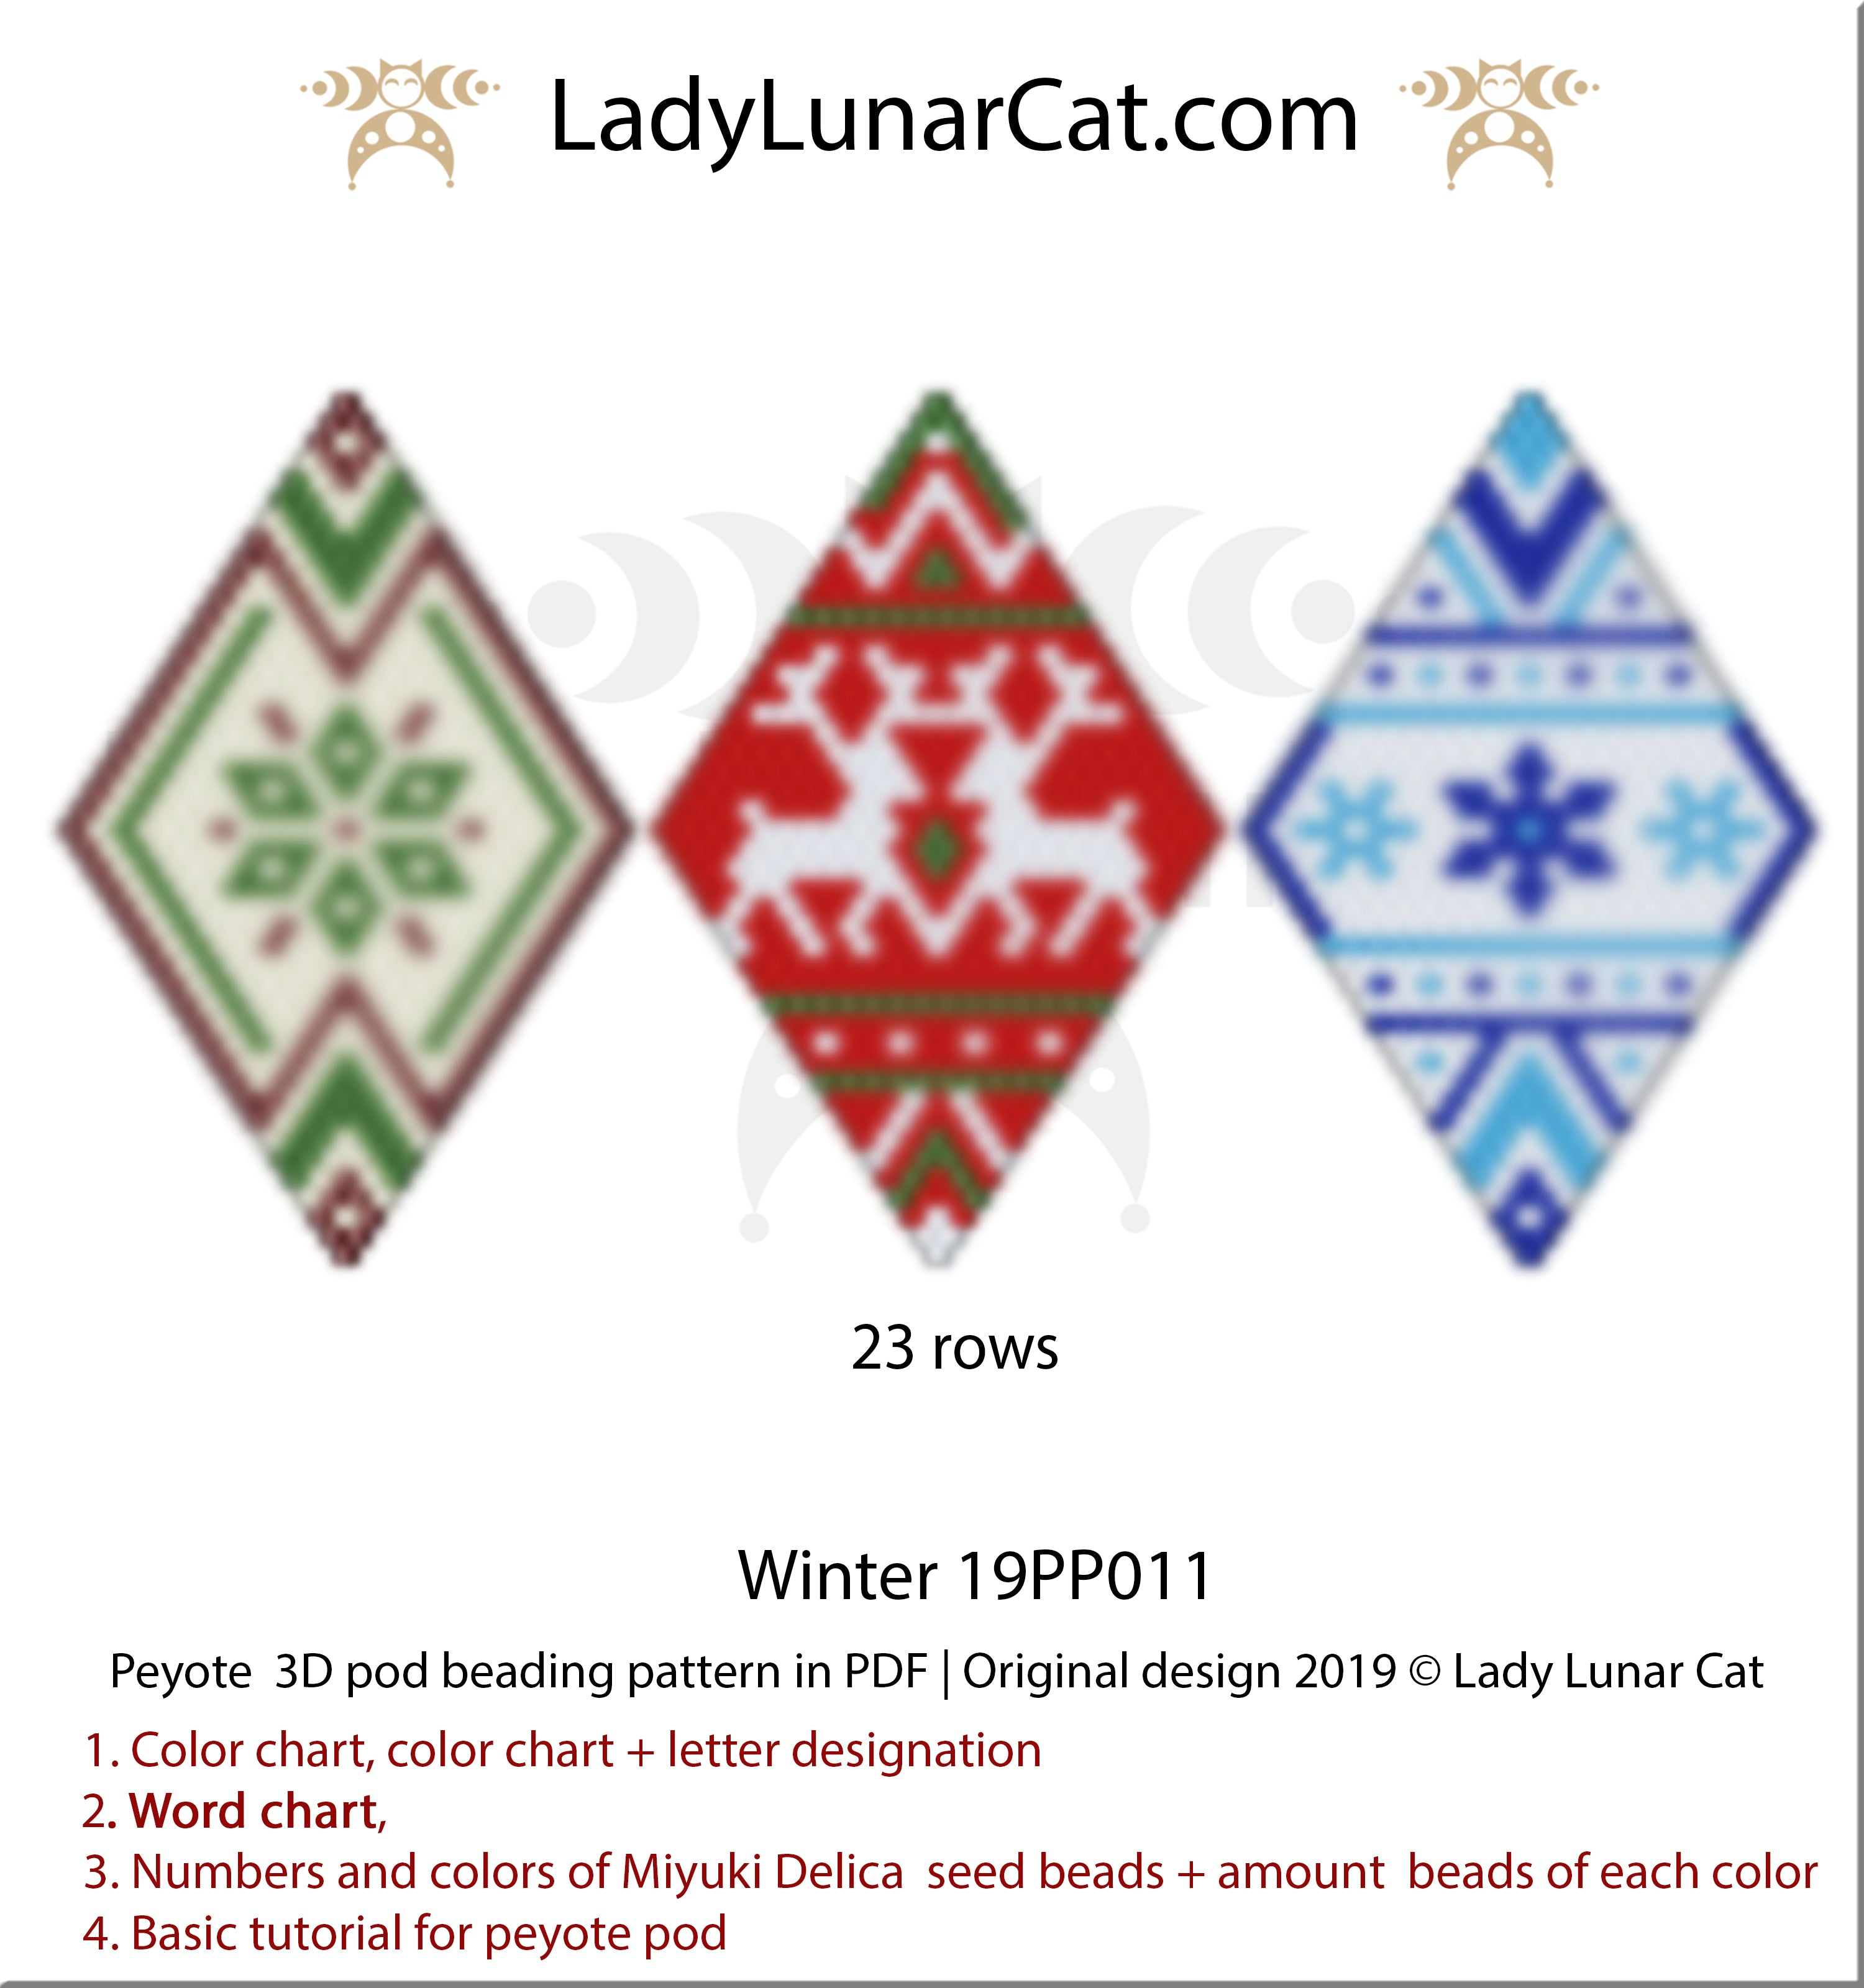 Peyote pod patterns for beading Winter ornament by Lady Lunat Cat design